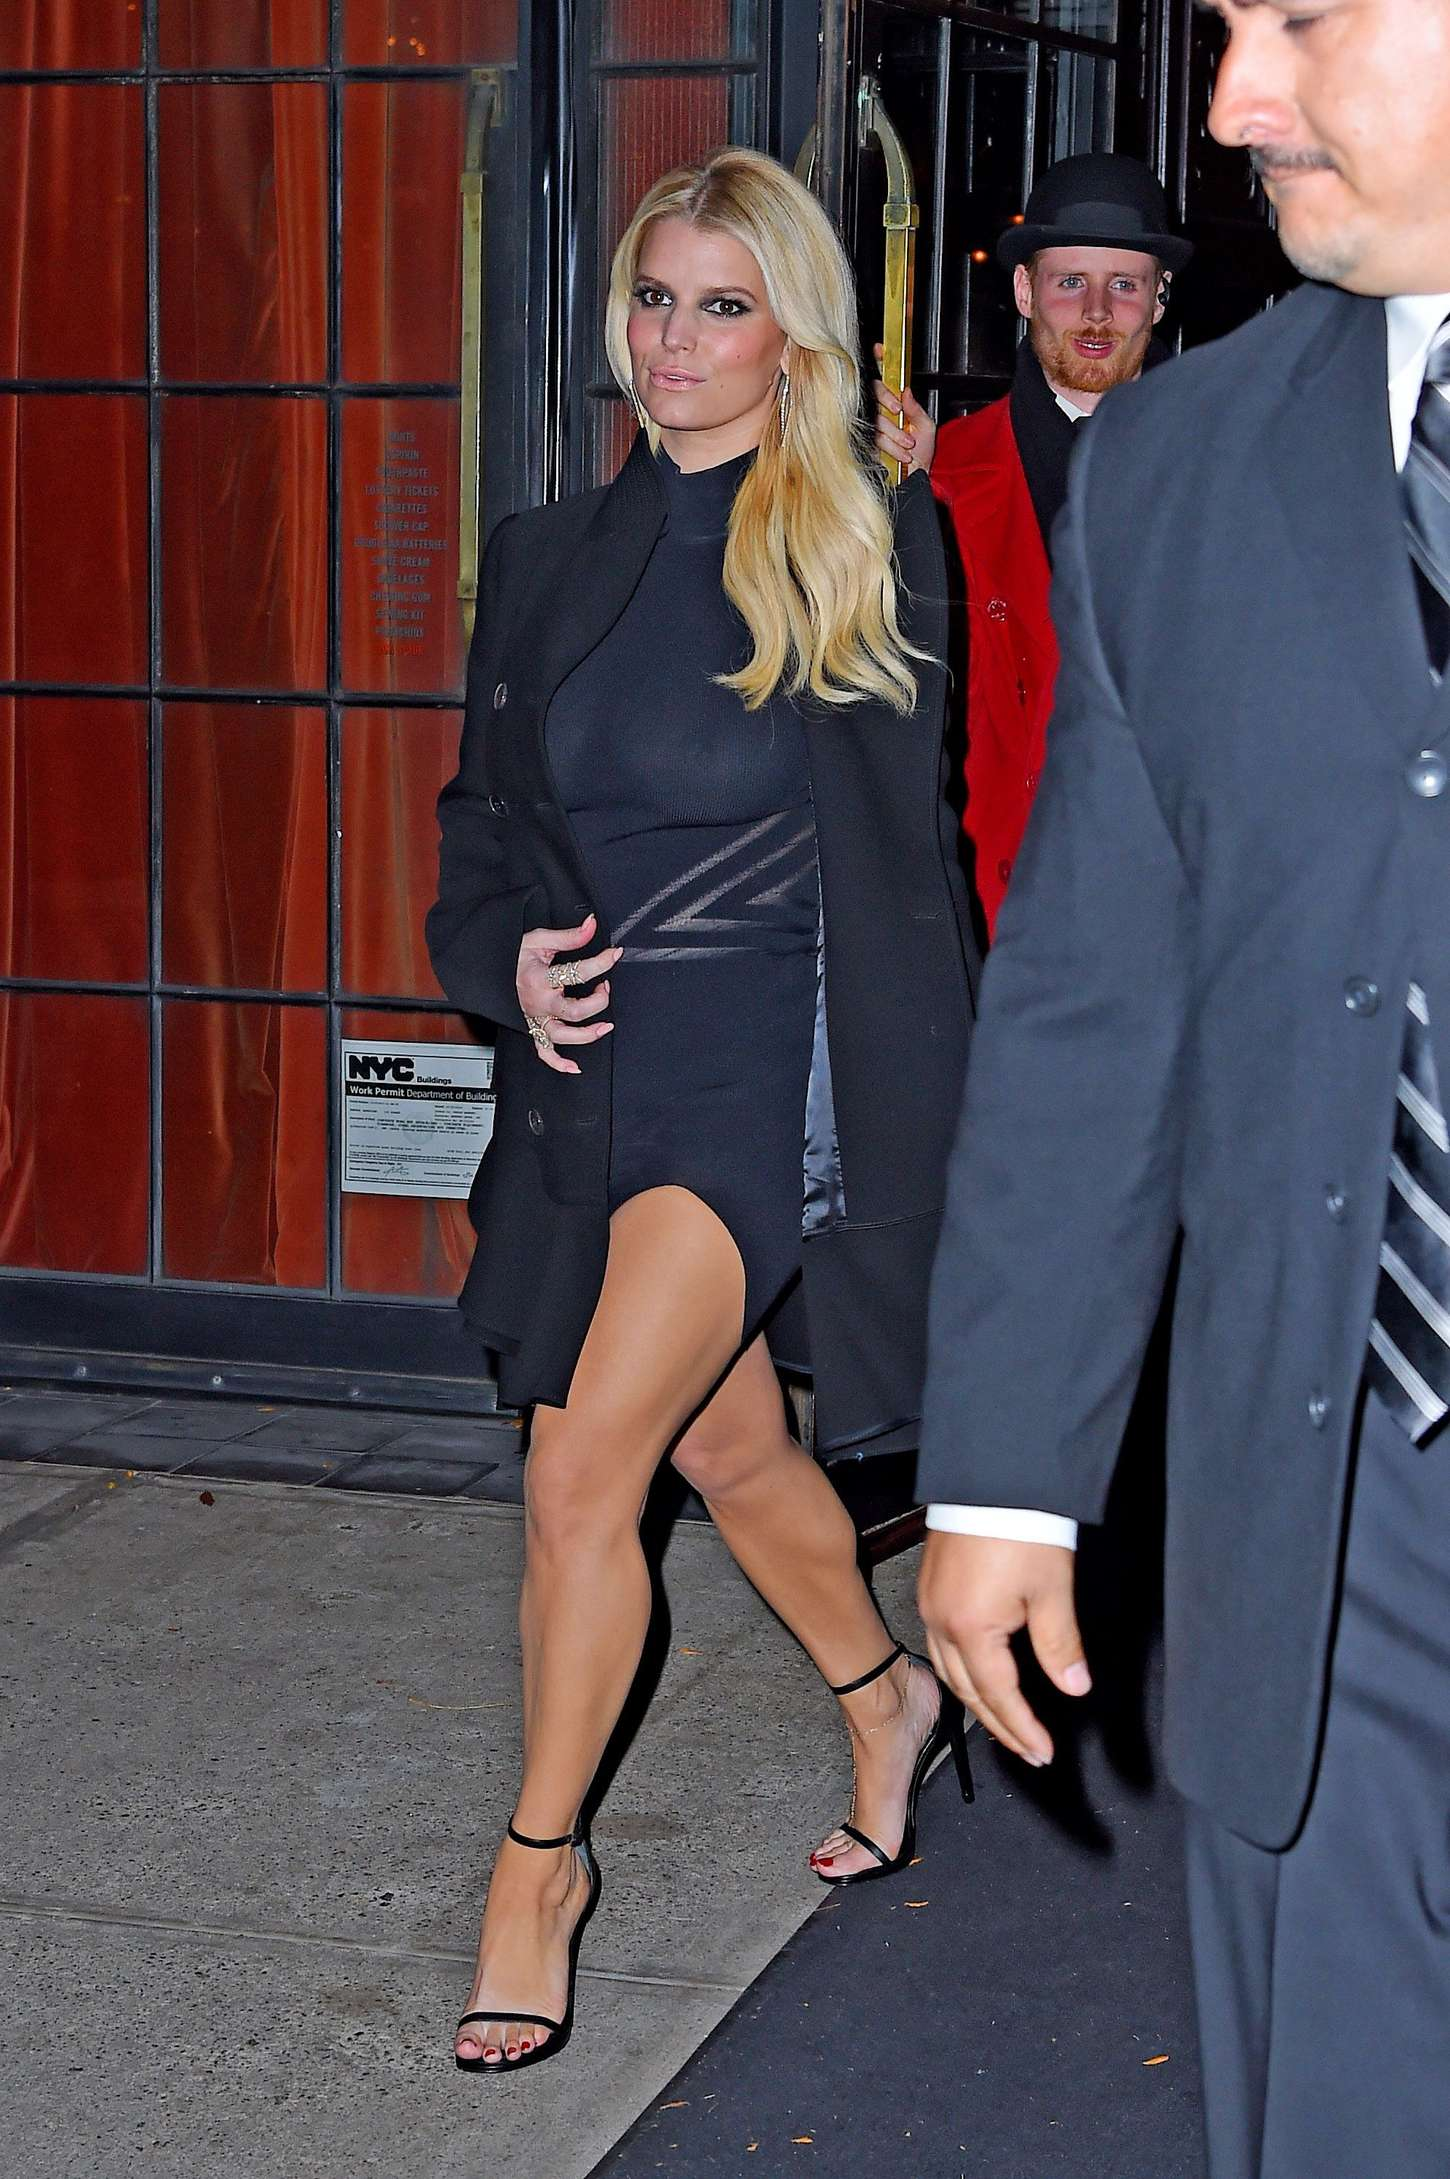 Jessica Simpson in Tight Dress in New York